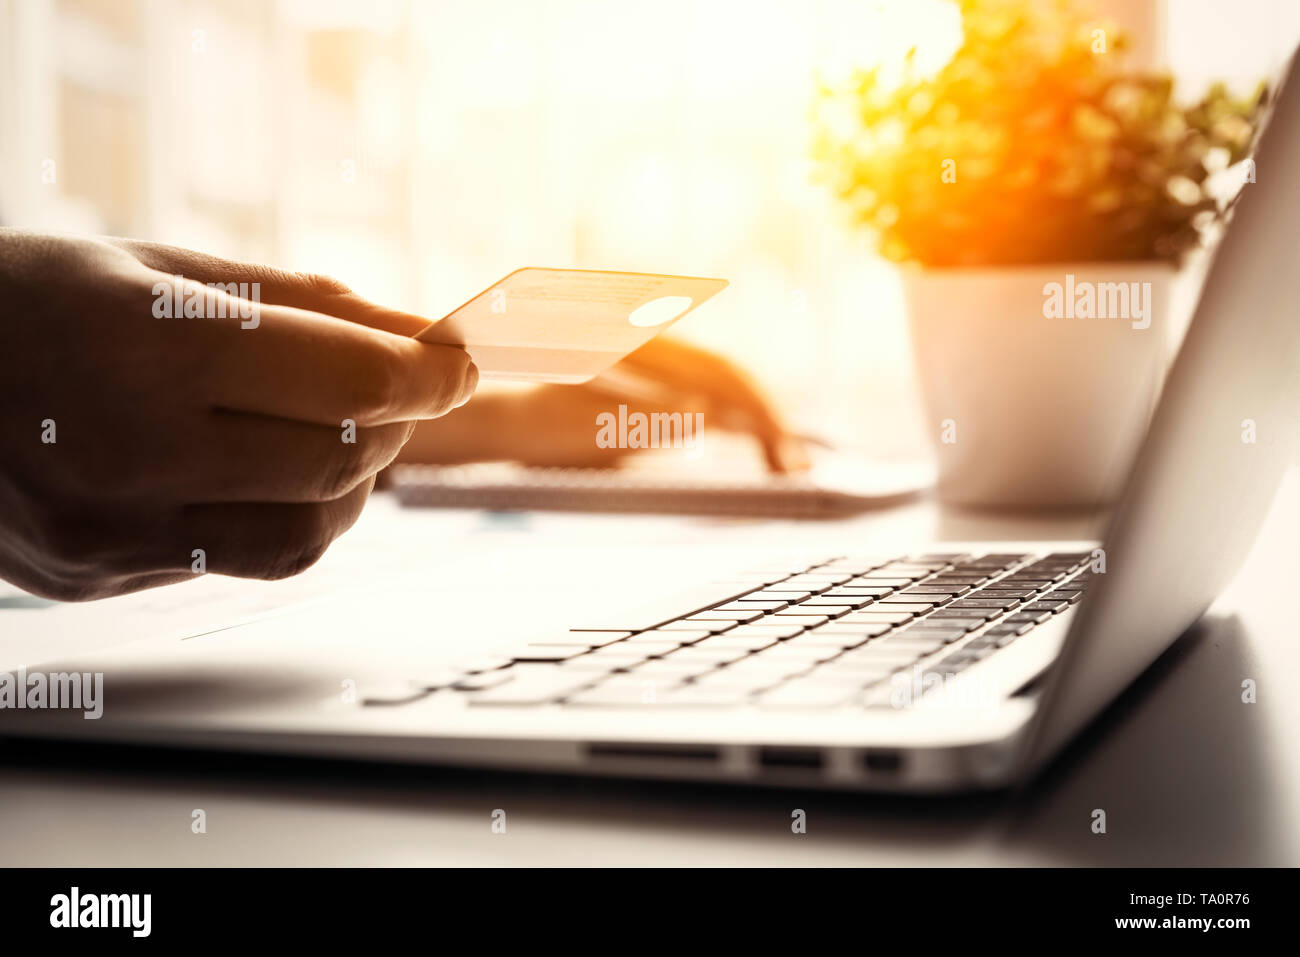 Man using credit card while internet shopping. Credit card online payment concept. - Stock Image